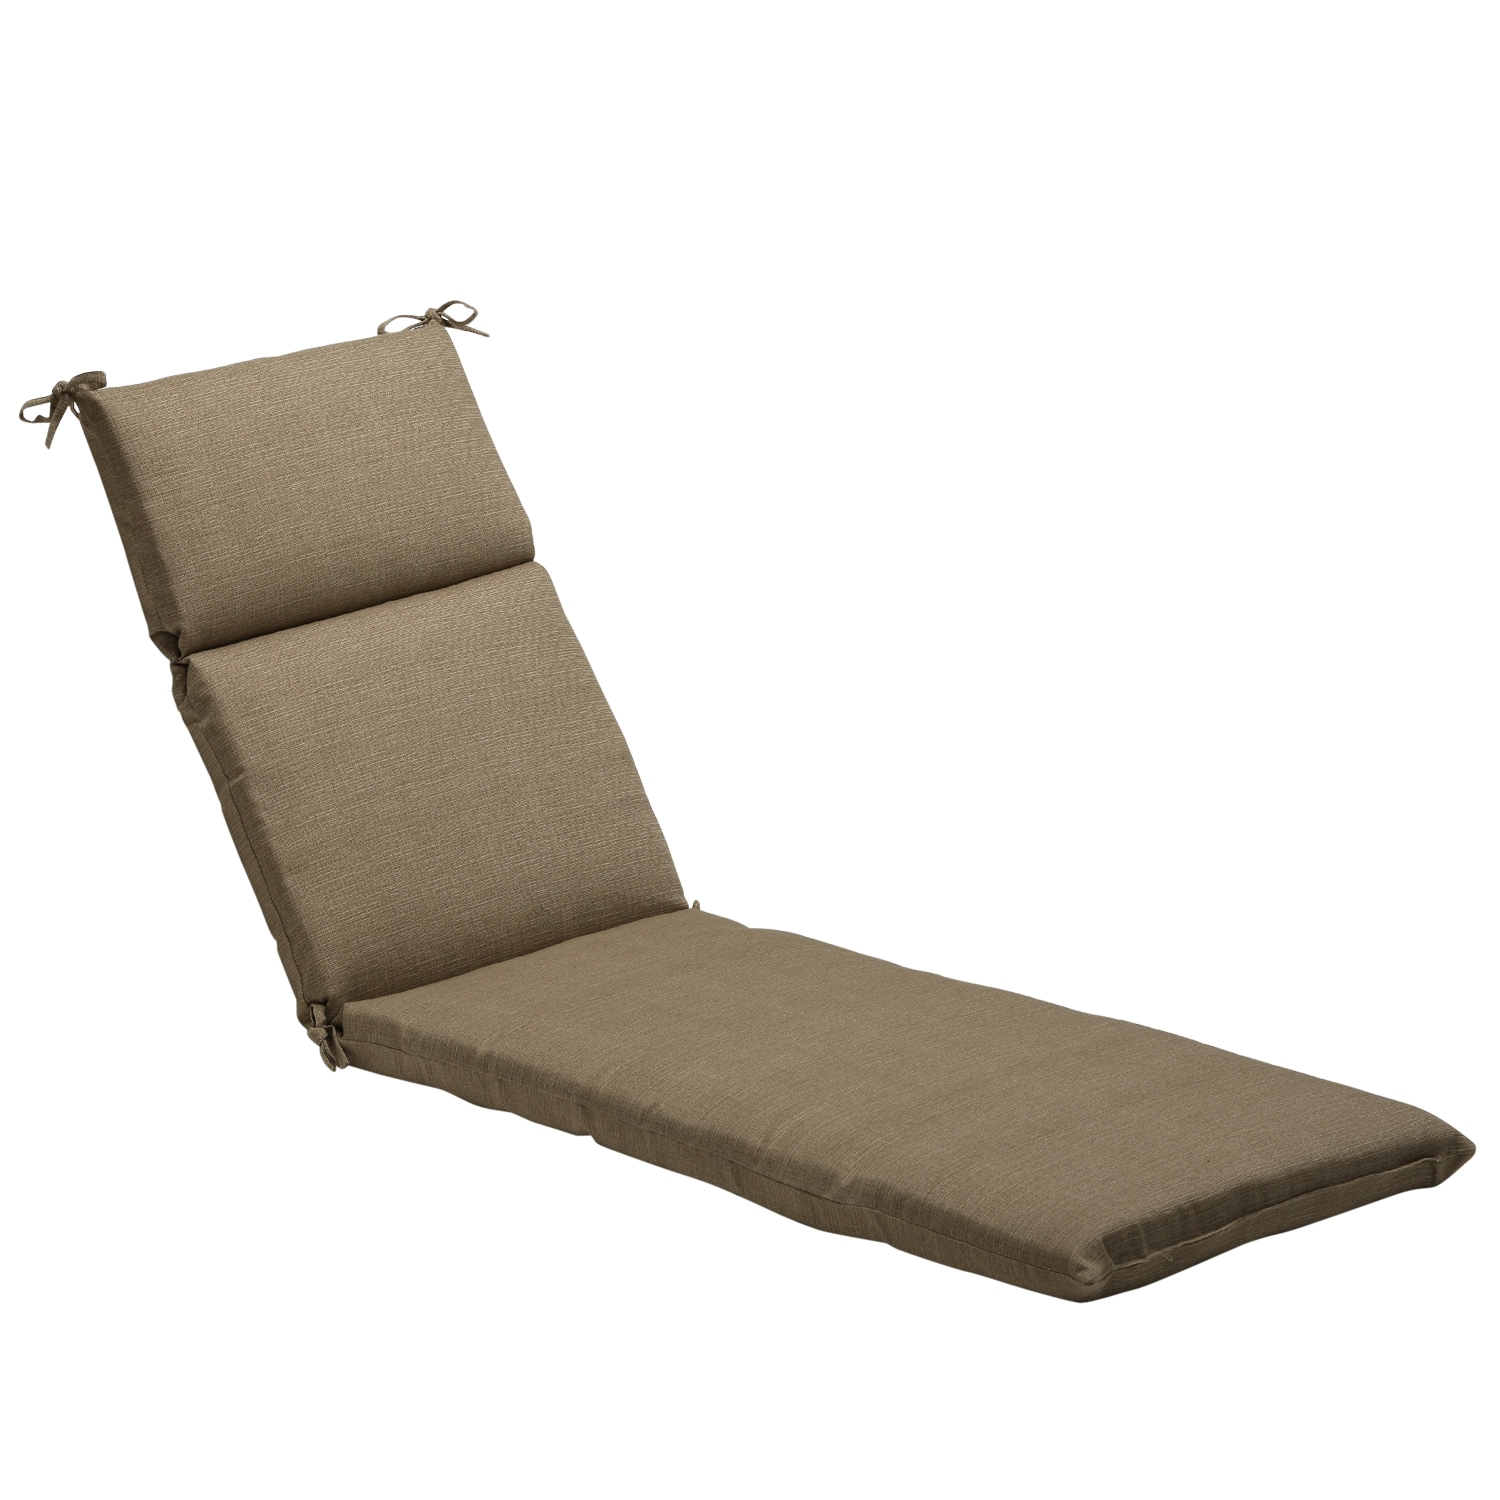 Outdoor chaise lounge cushions threshold outdoor chaise for Chaise lounge cushion outdoor